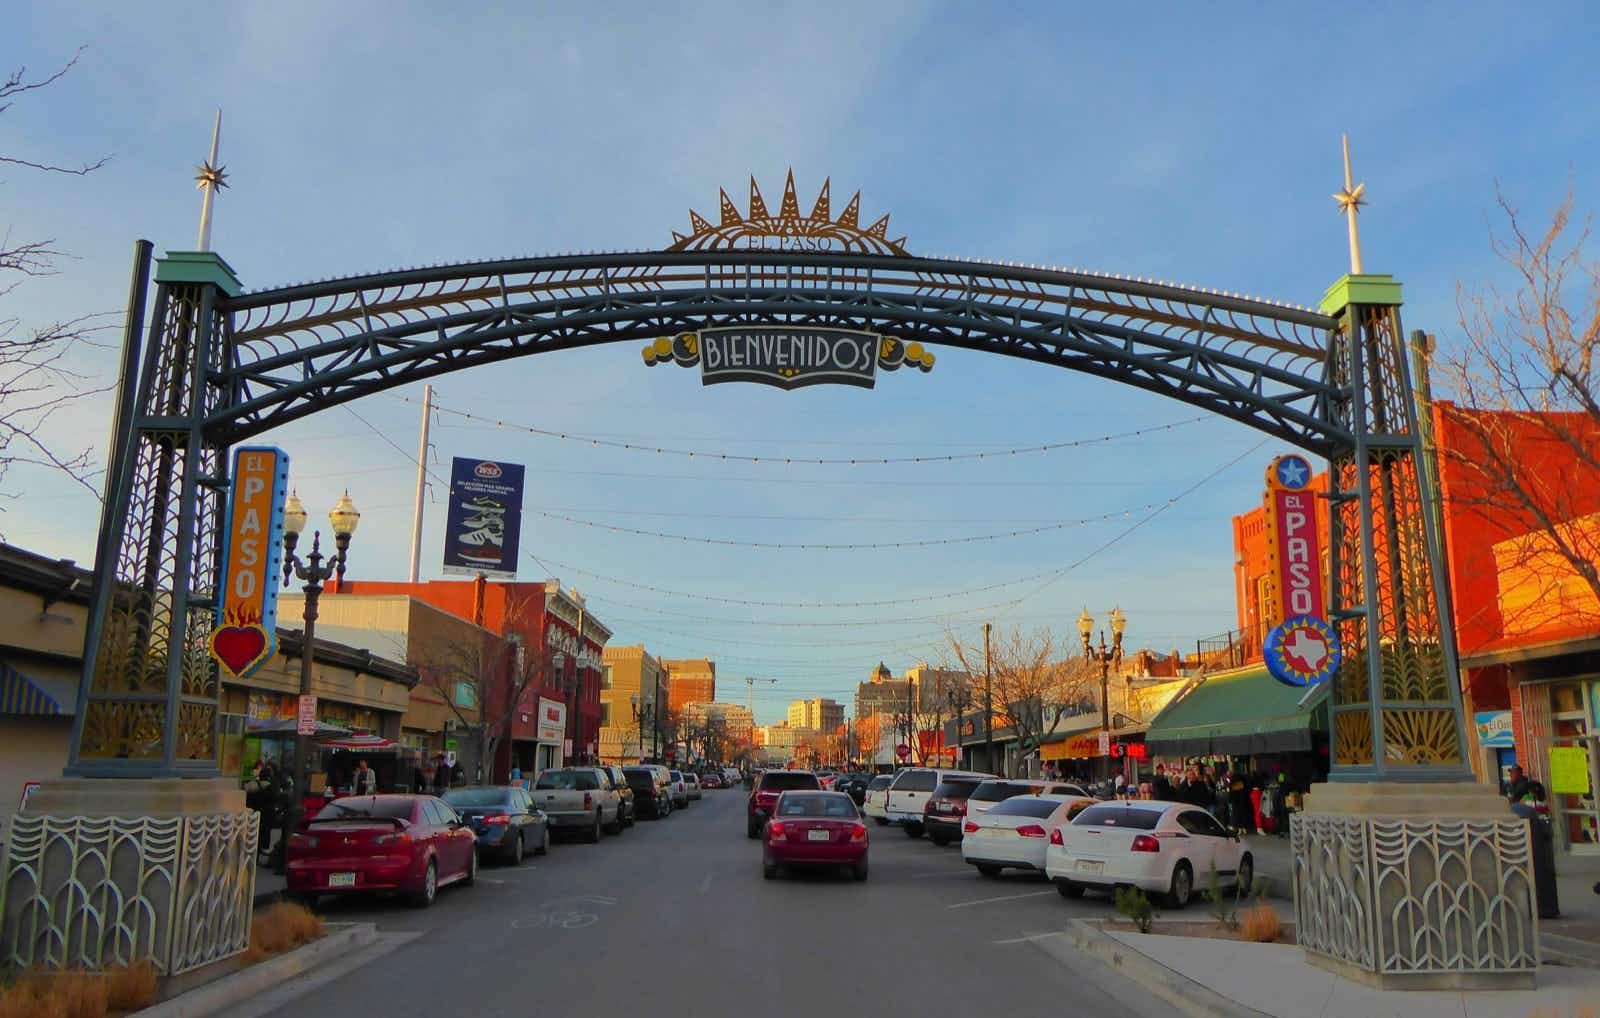 A city street, with shops along each side, is dominated by a colorful archway in the foreground that welcomes visitors to El Paso, Texas